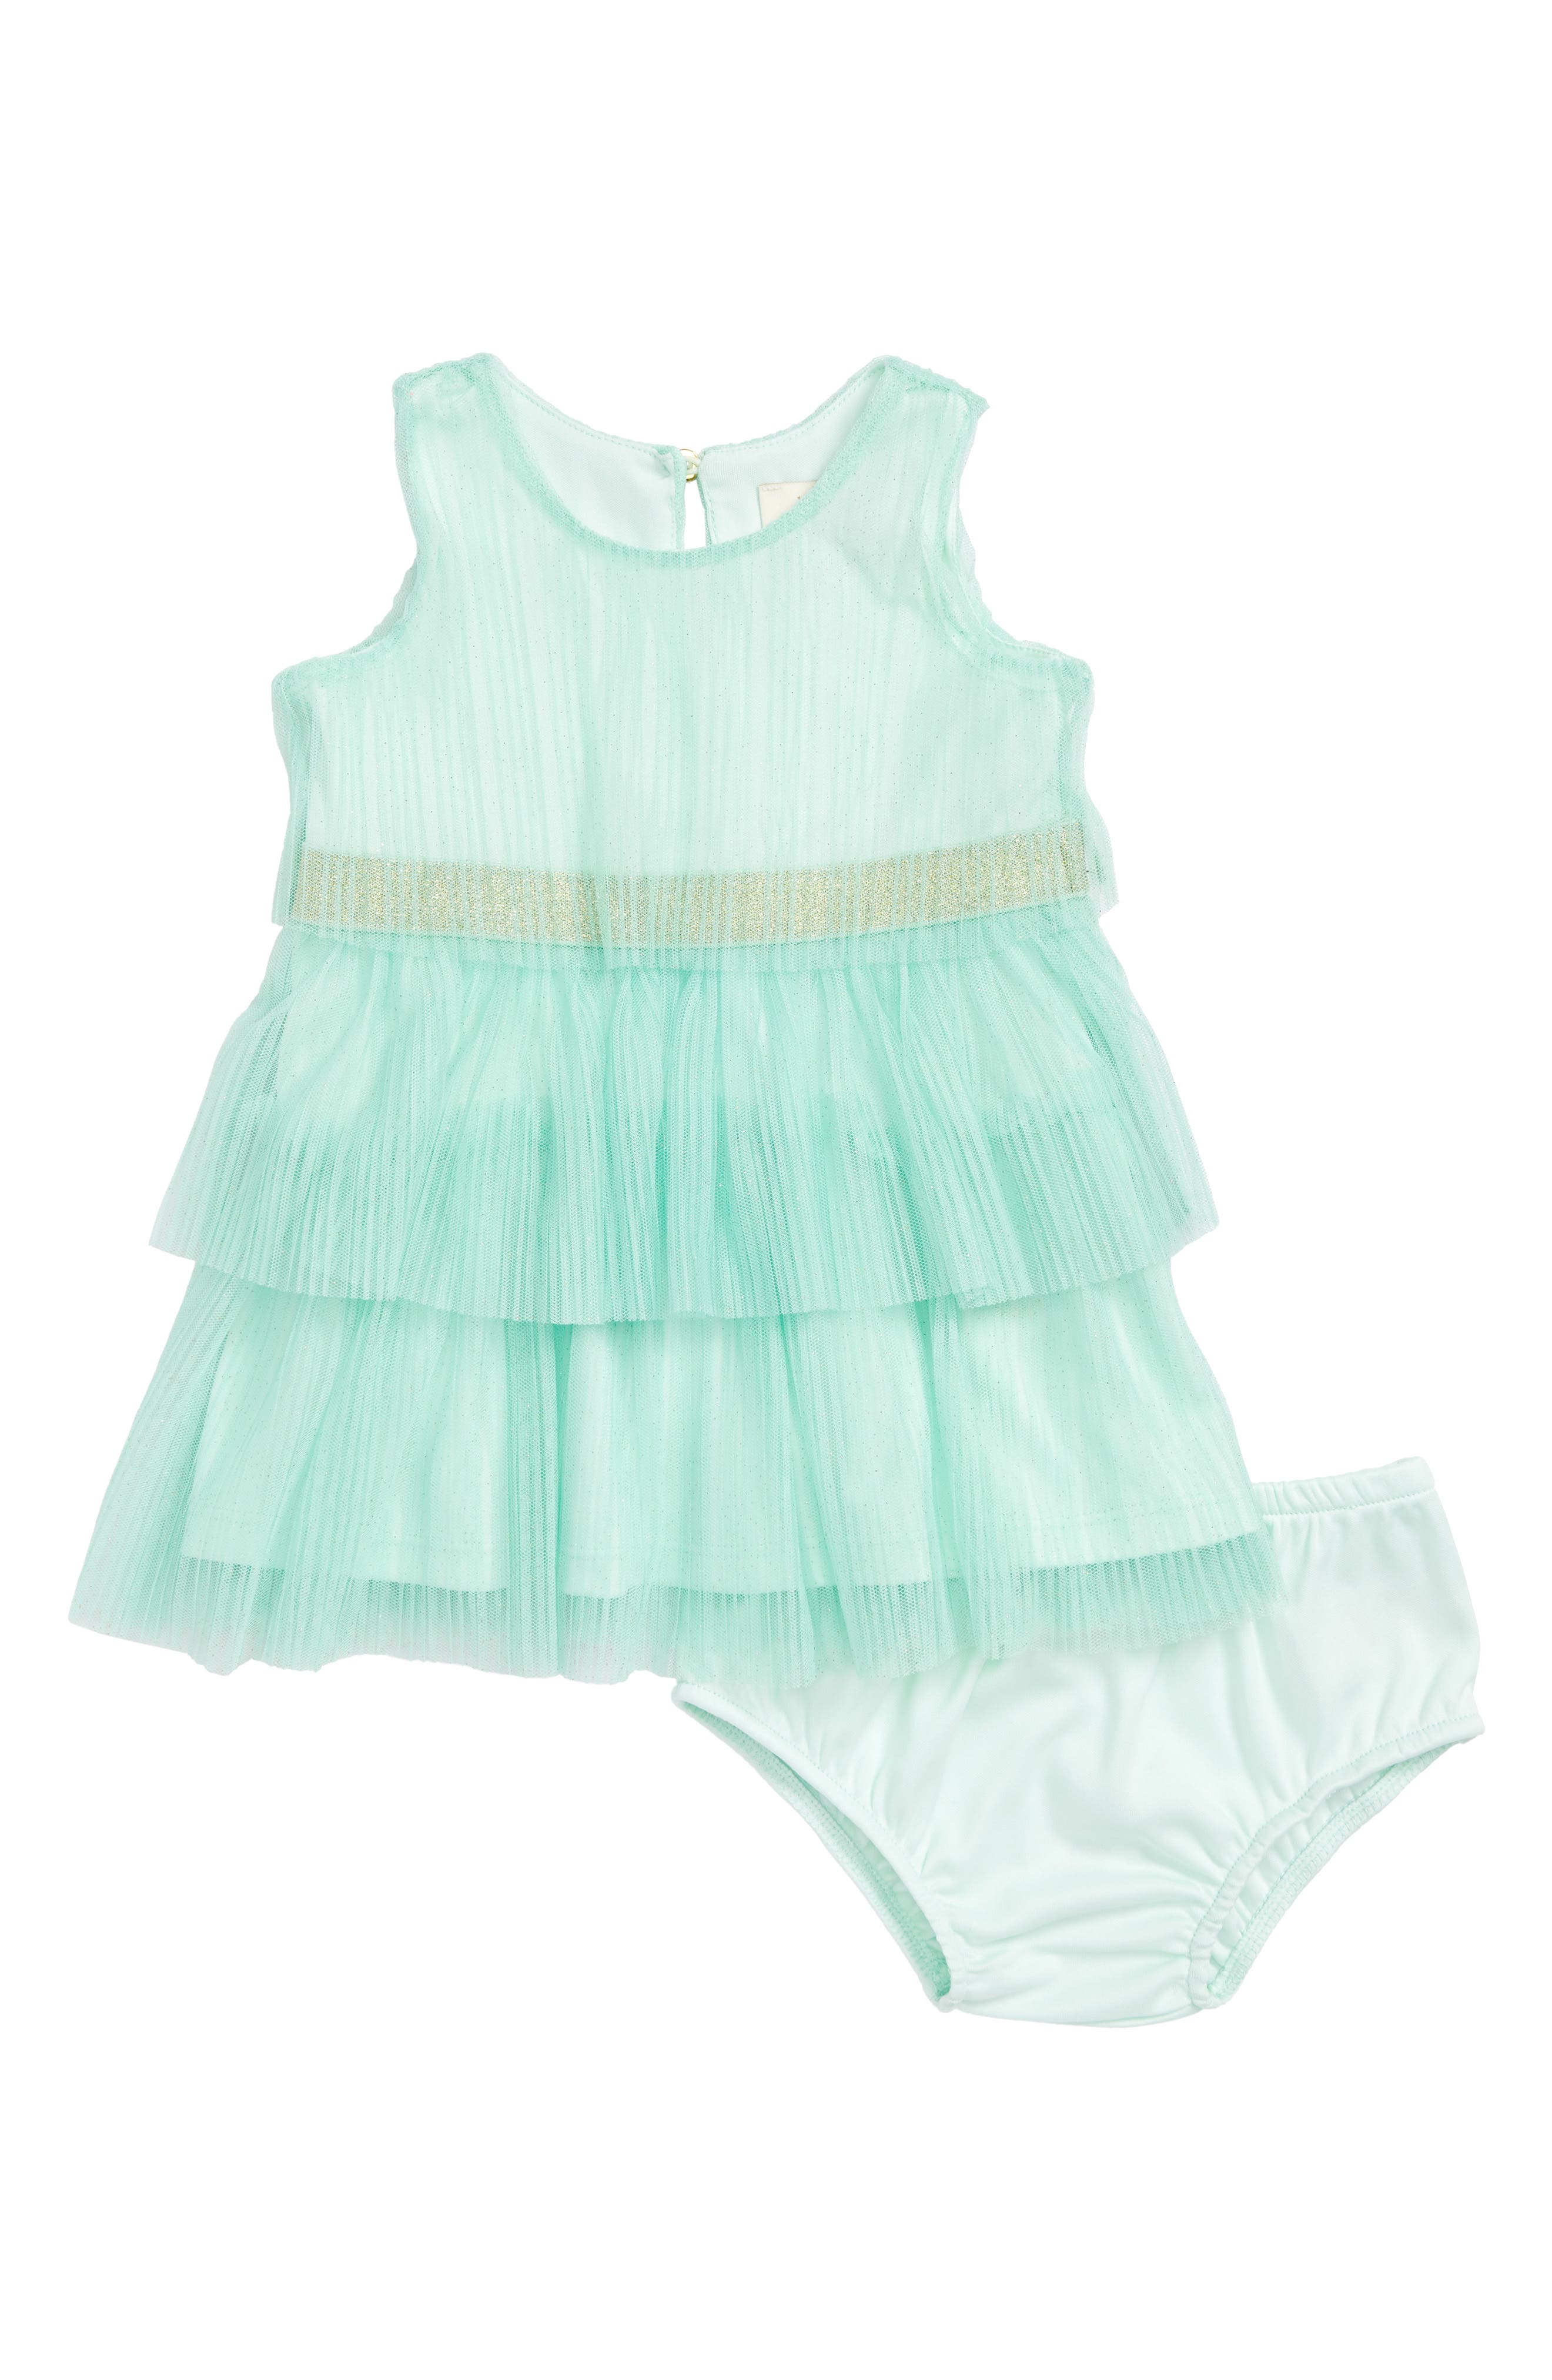 kate spade new york pleated tulle dress (Baby Girls)